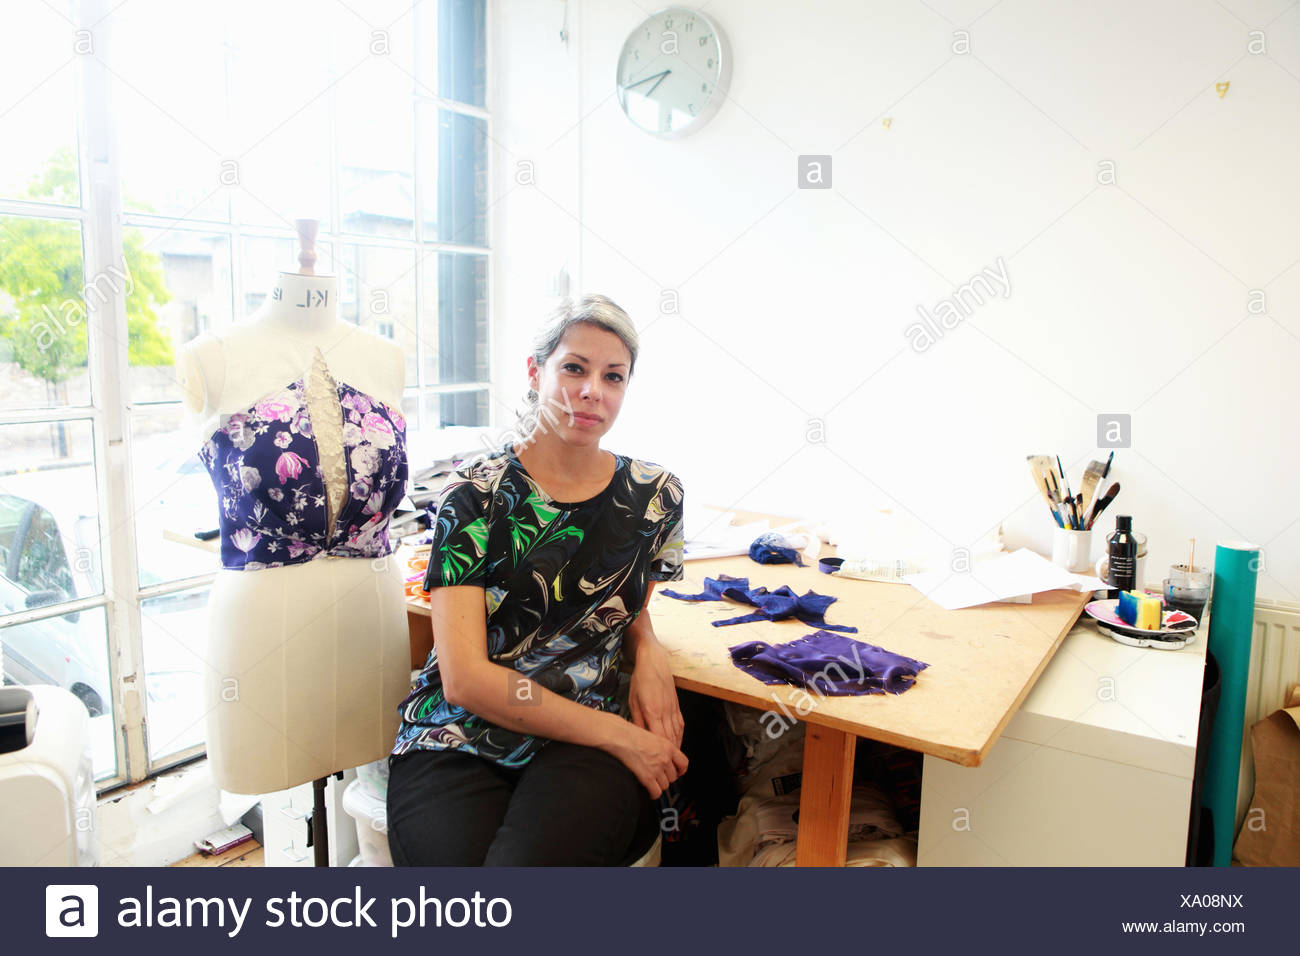 Designer in her studio - Stock Image